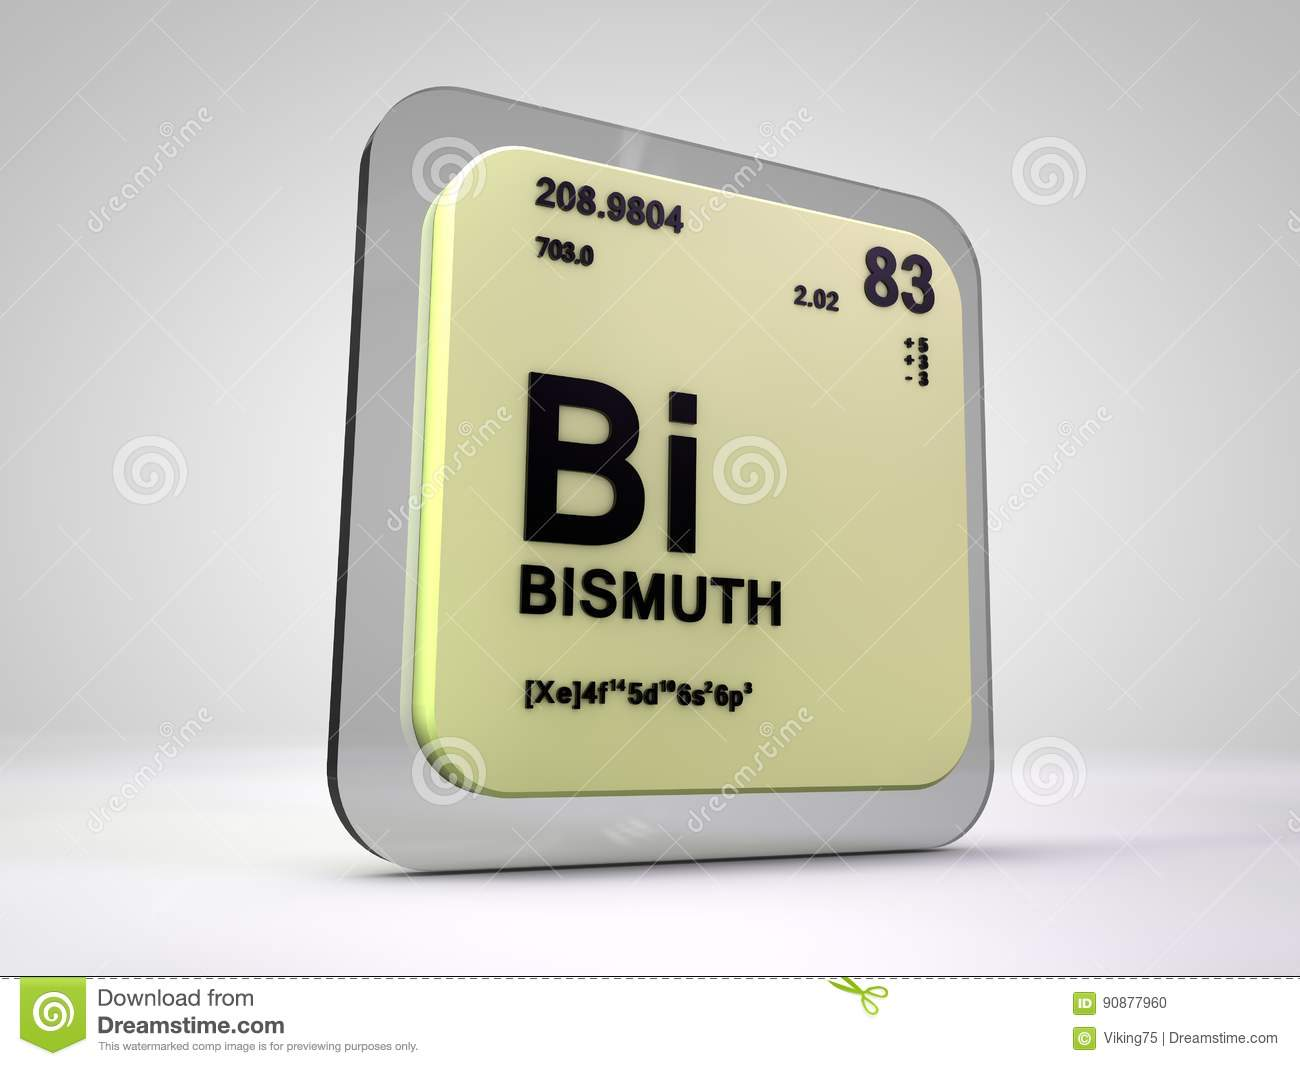 Bismuth bi chemical element periodic table stock illustration bismuth bi chemical element periodic table buycottarizona